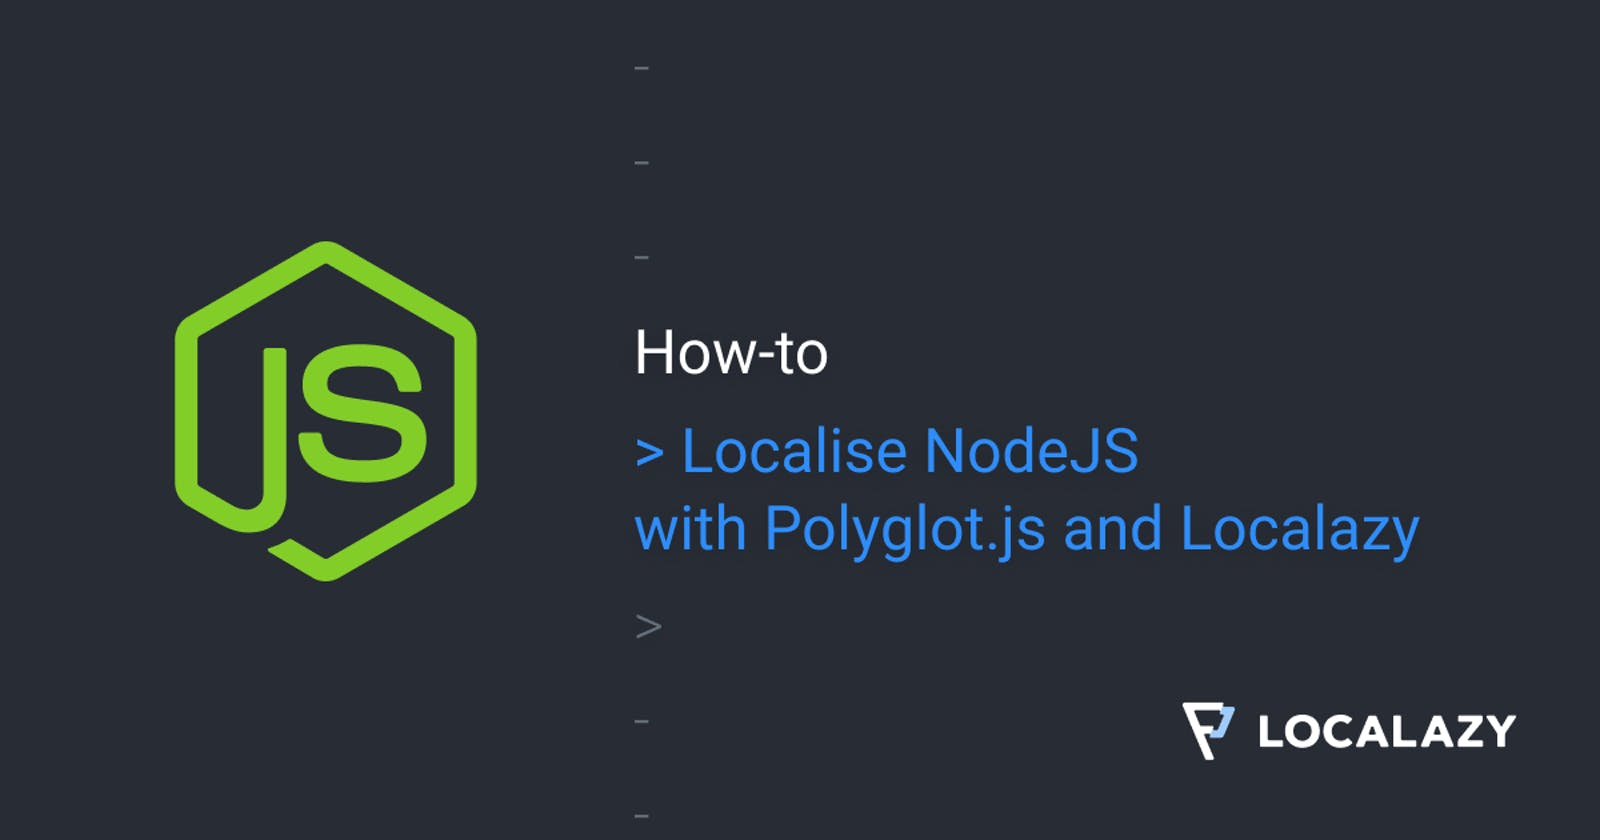 How to localize NodeJS with Polyglot.js and Localazy